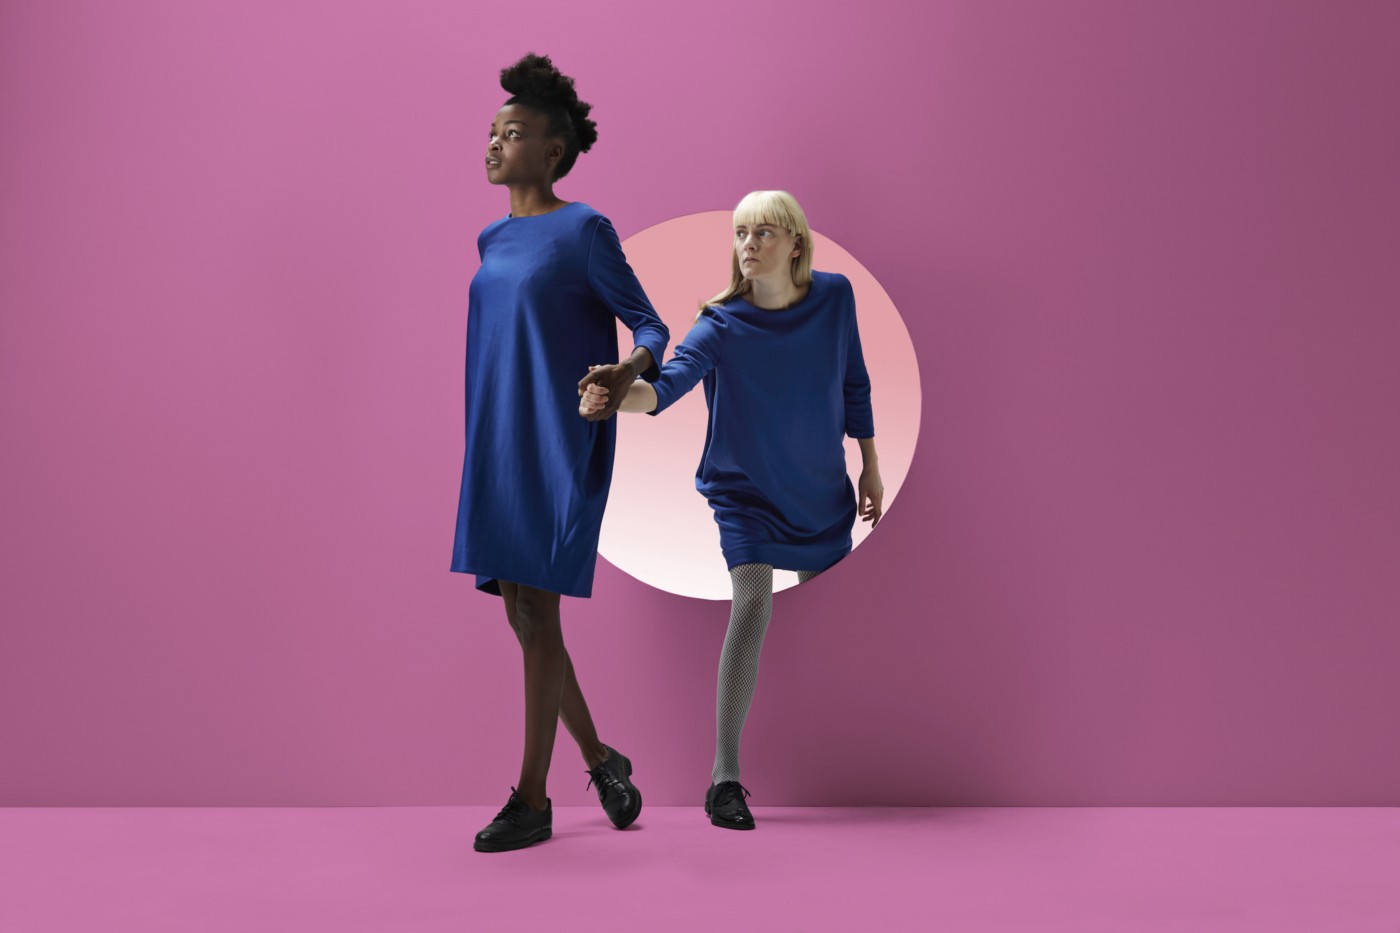 Two women peeking out of round opening in a pink wall.